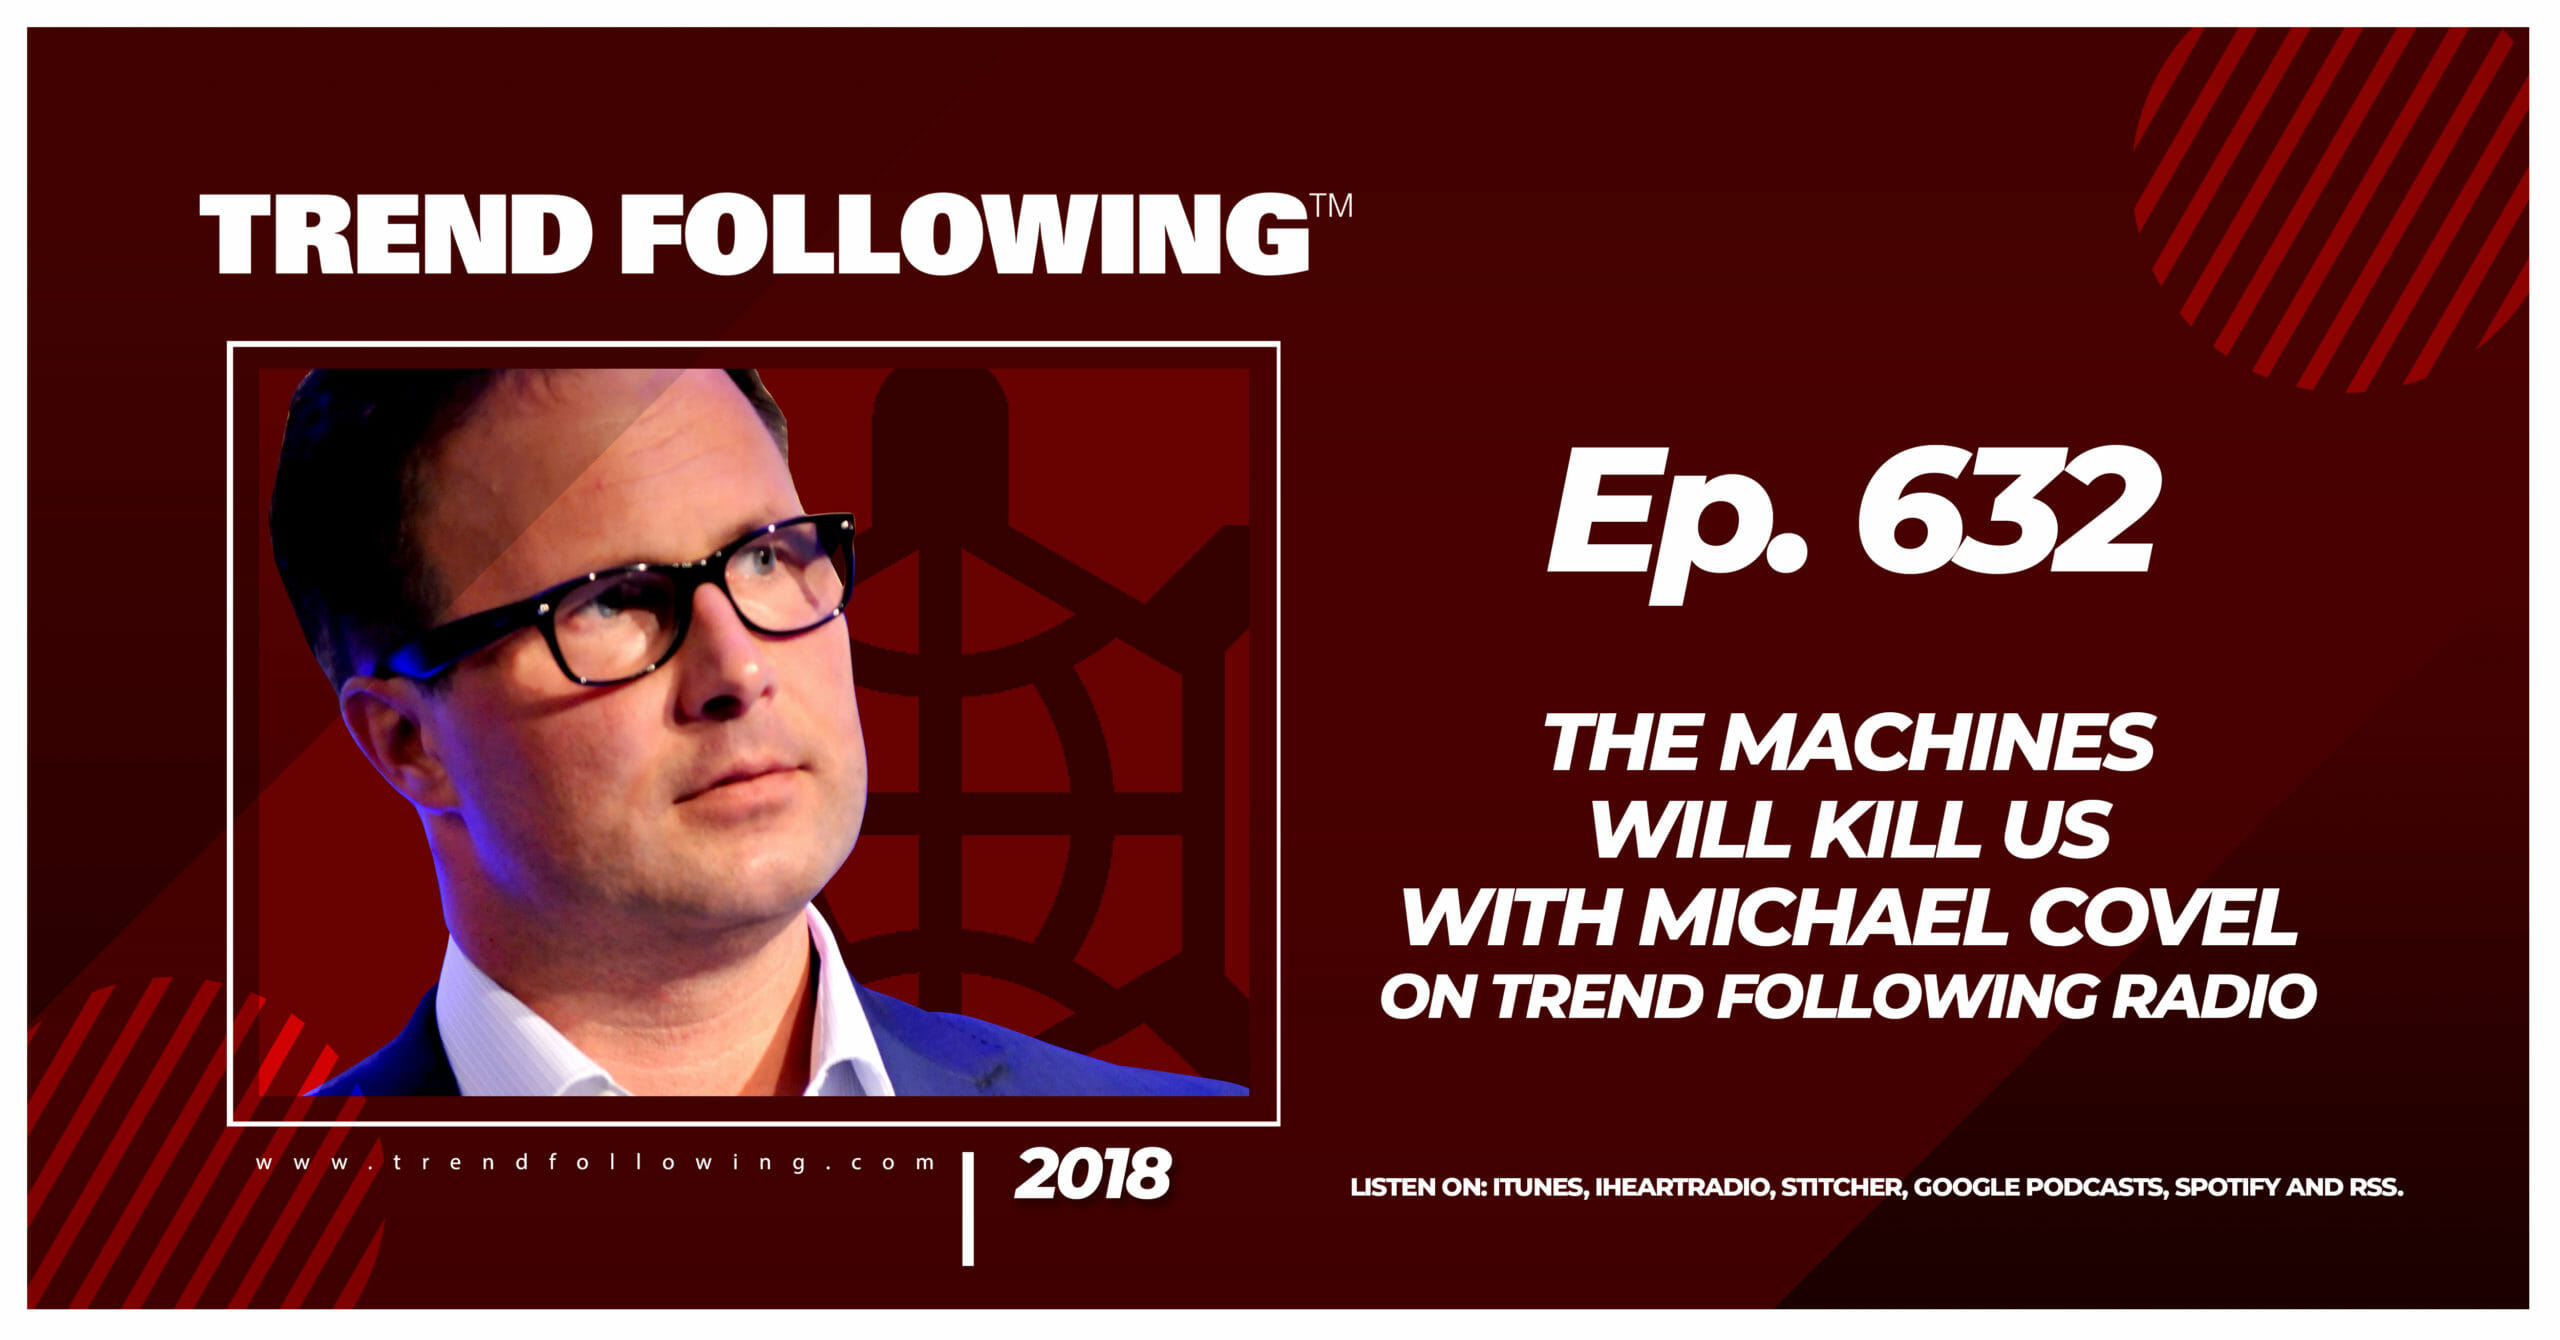 The Machines Will Kill Us with Michael Covel